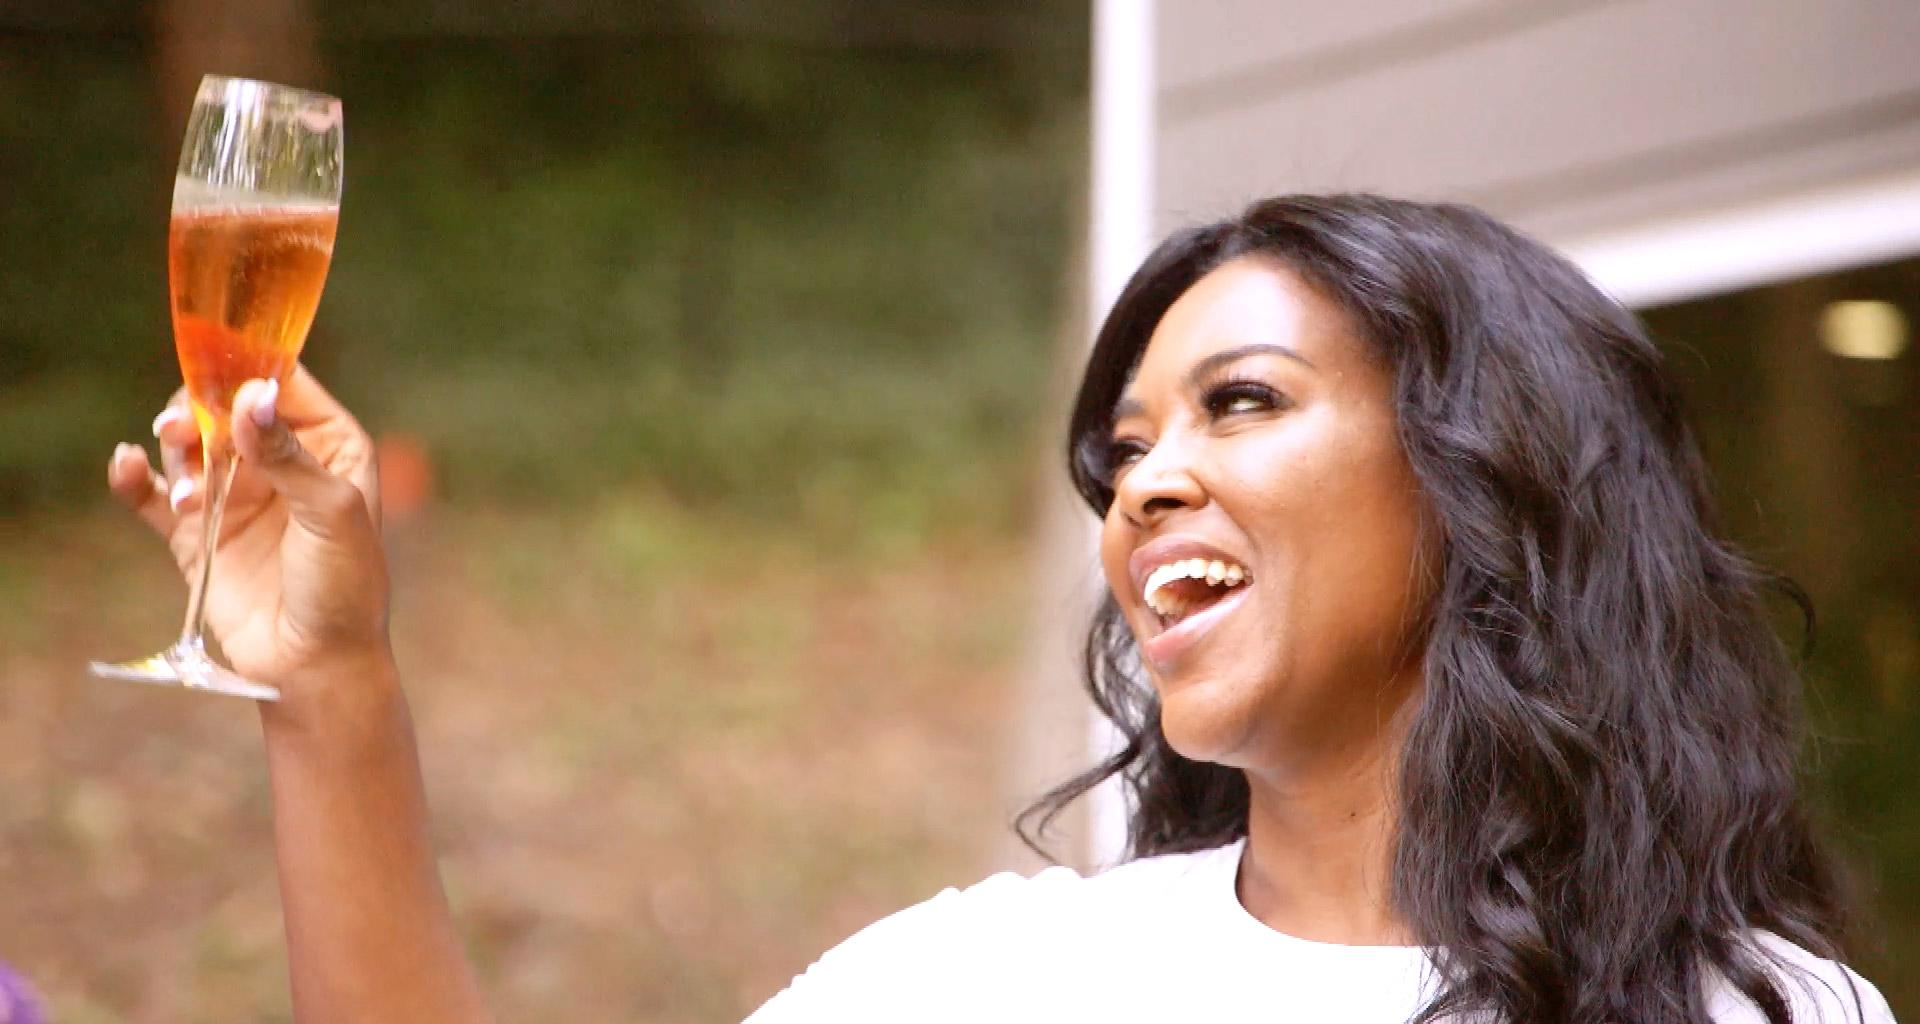 Kenya Moore Allegedly Broke Down While Filming RHOA Due To Marital Issues With Marc Daly -- 'Kenya Had A Meltdown'